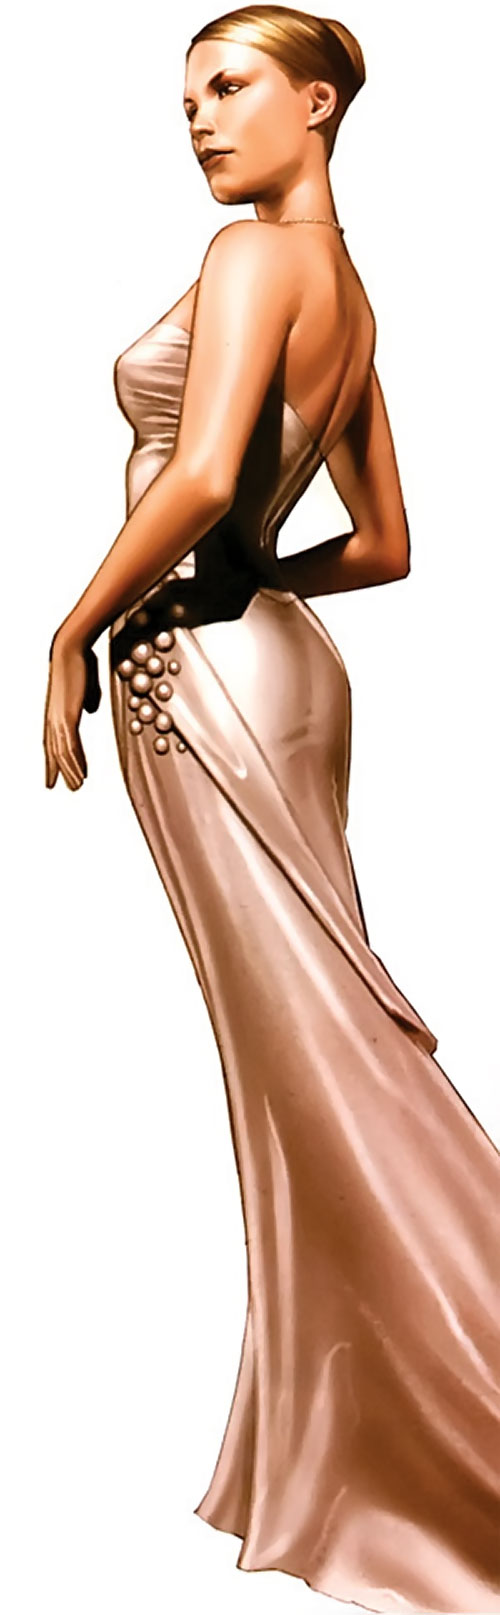 Elsa Bloodstone (Marvel Comics after Nextwave) in an expensive gown